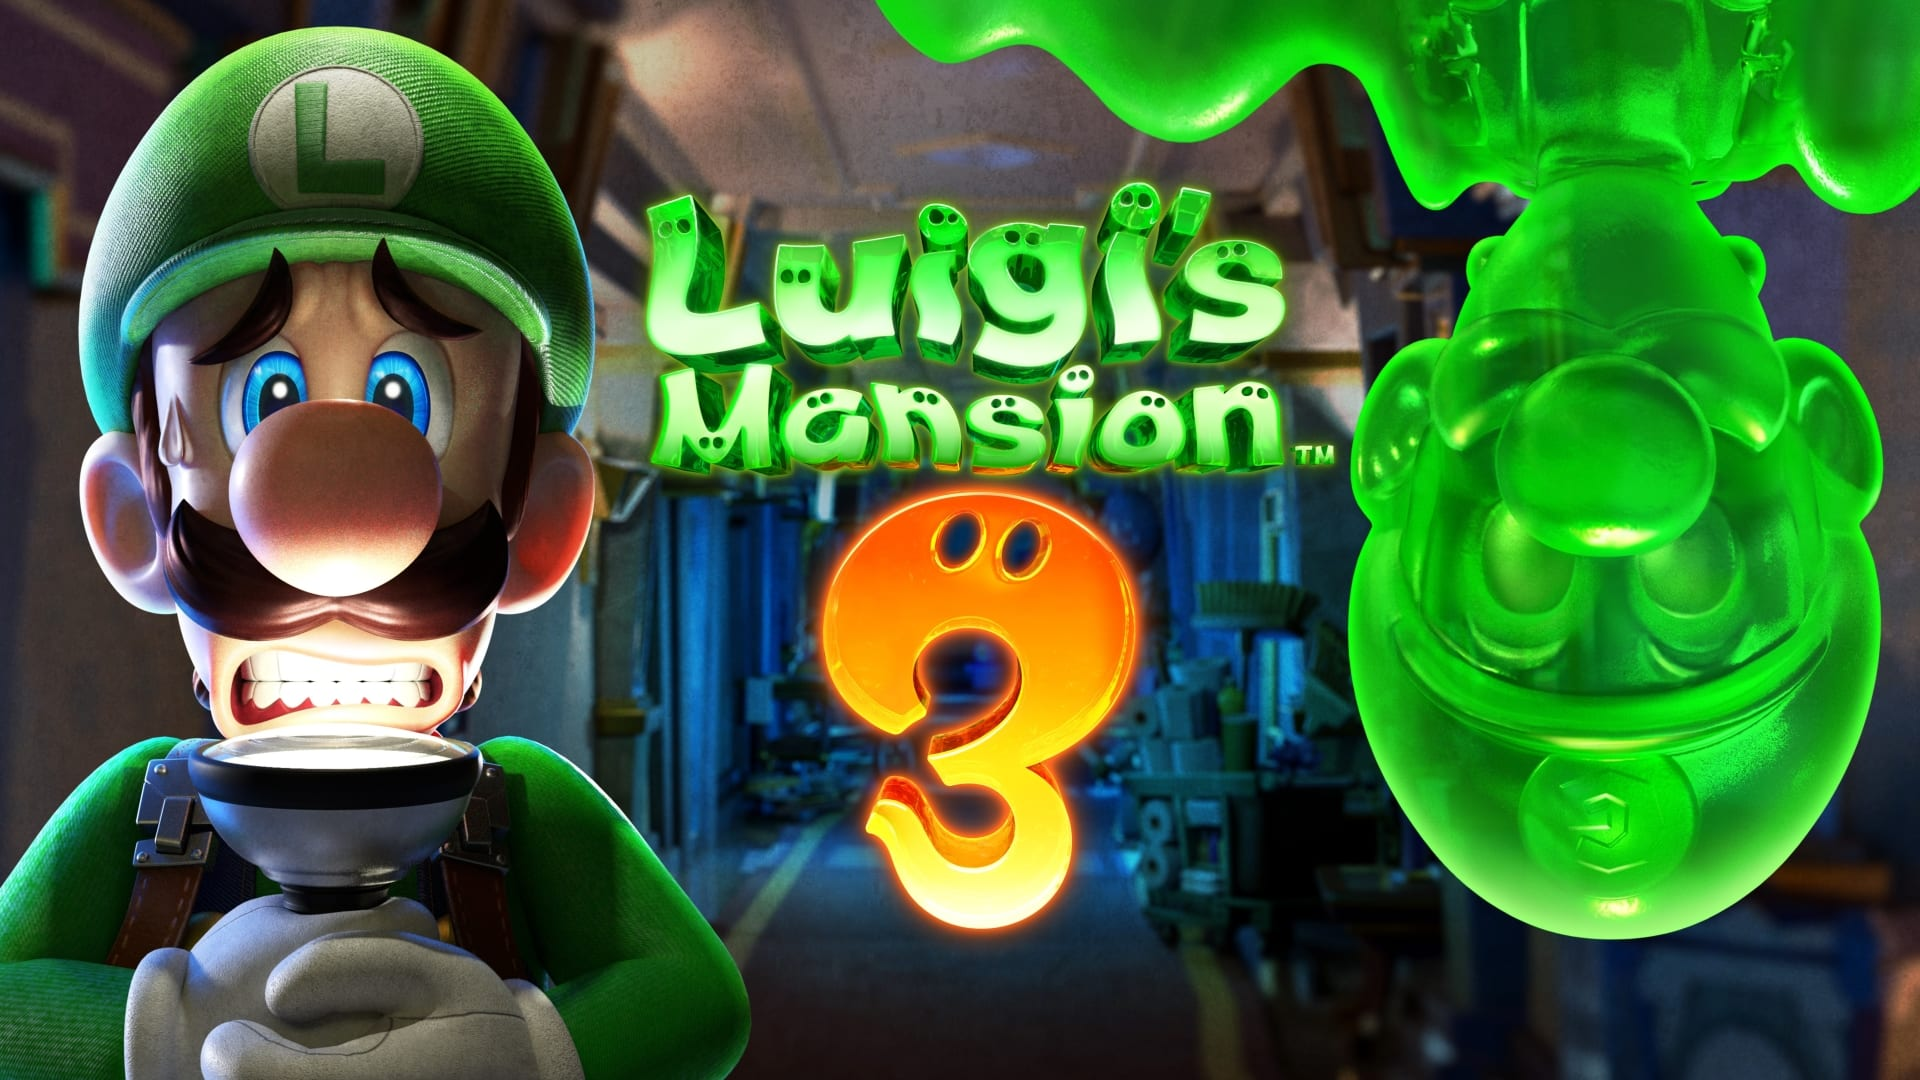 4k Hd Luigis Mansion 3 Wallpapers You Need To Make Your